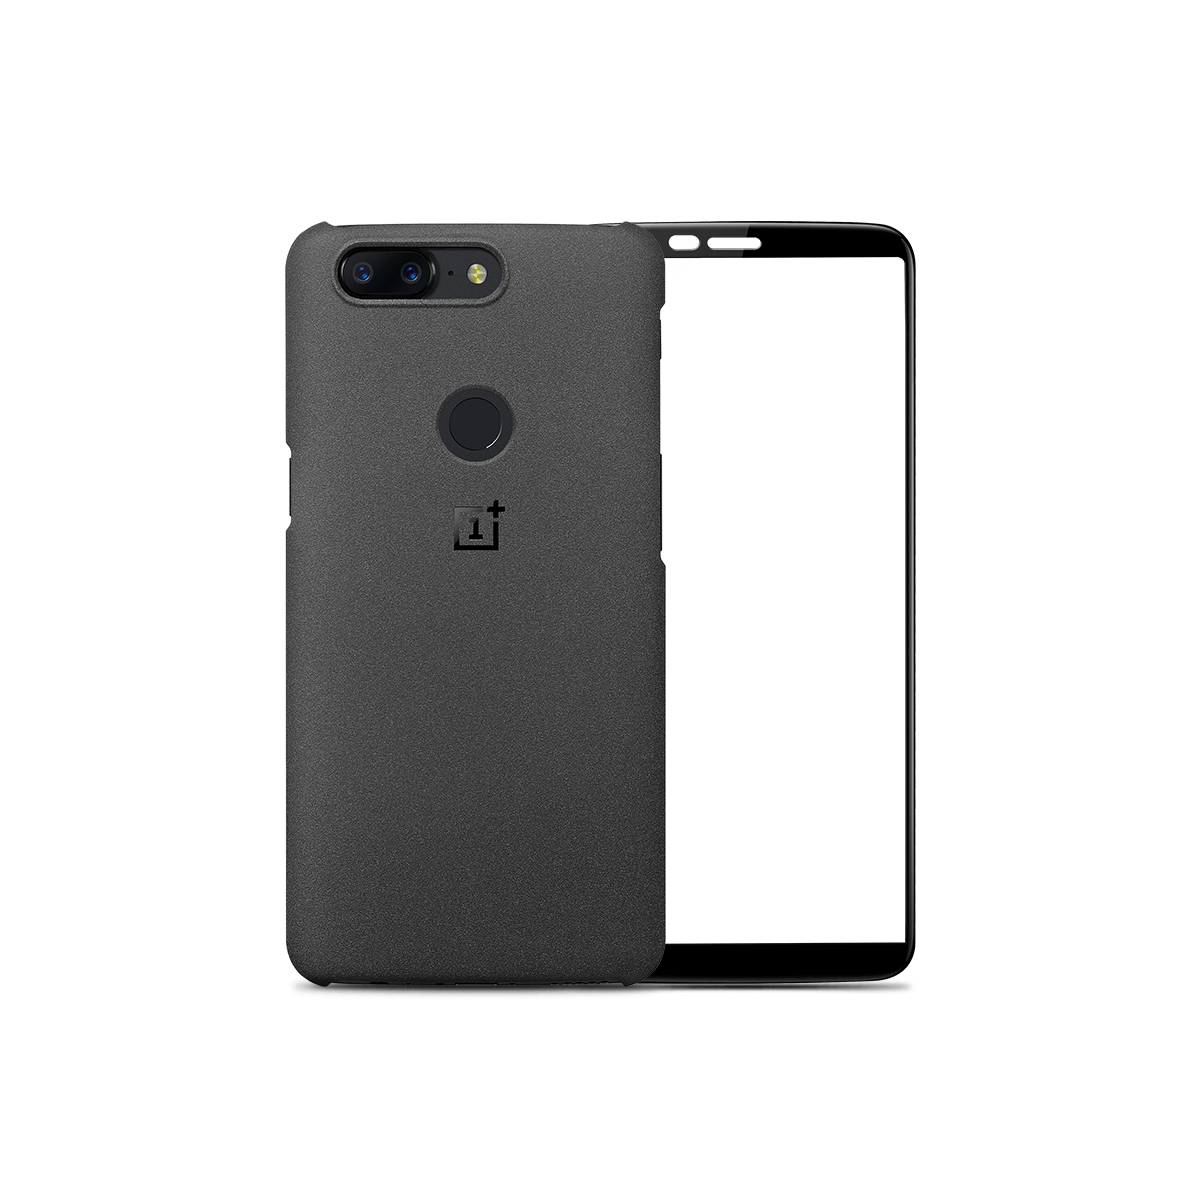 Compare cheap offers & prices of OnePlus 5T Full Scratch Protection Bundle manufactured by OnePlus